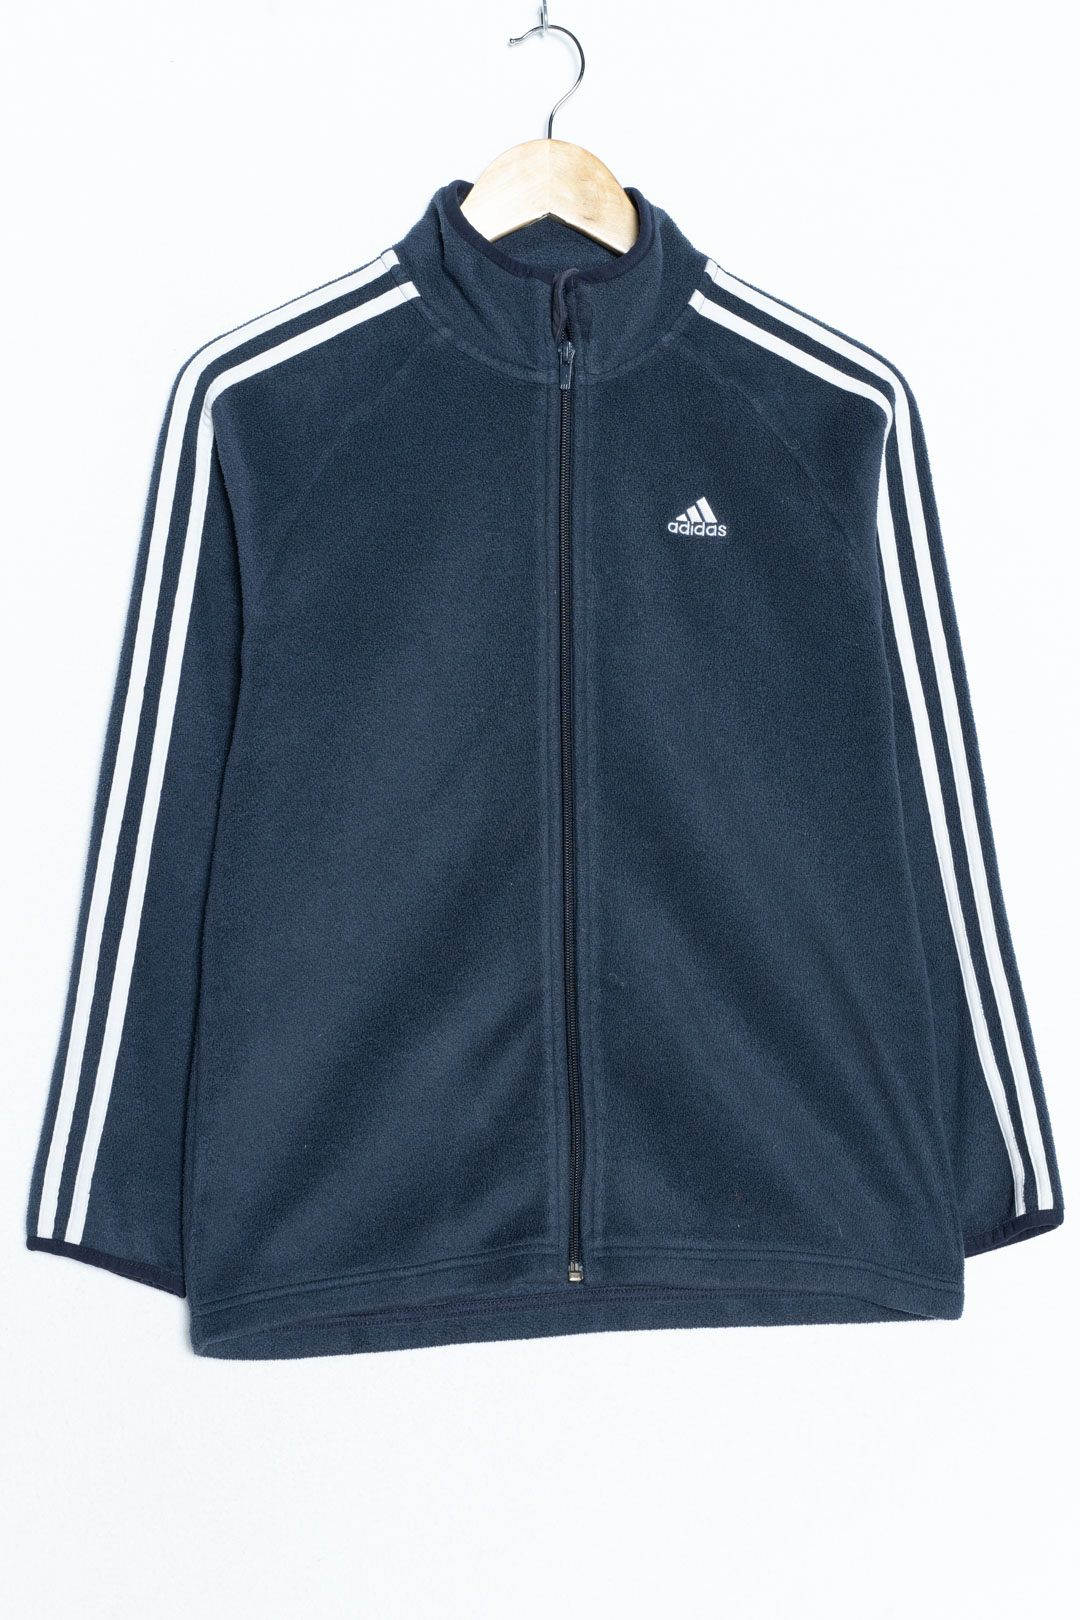 Adidas Blue White Fleece S - VinoKilo.com